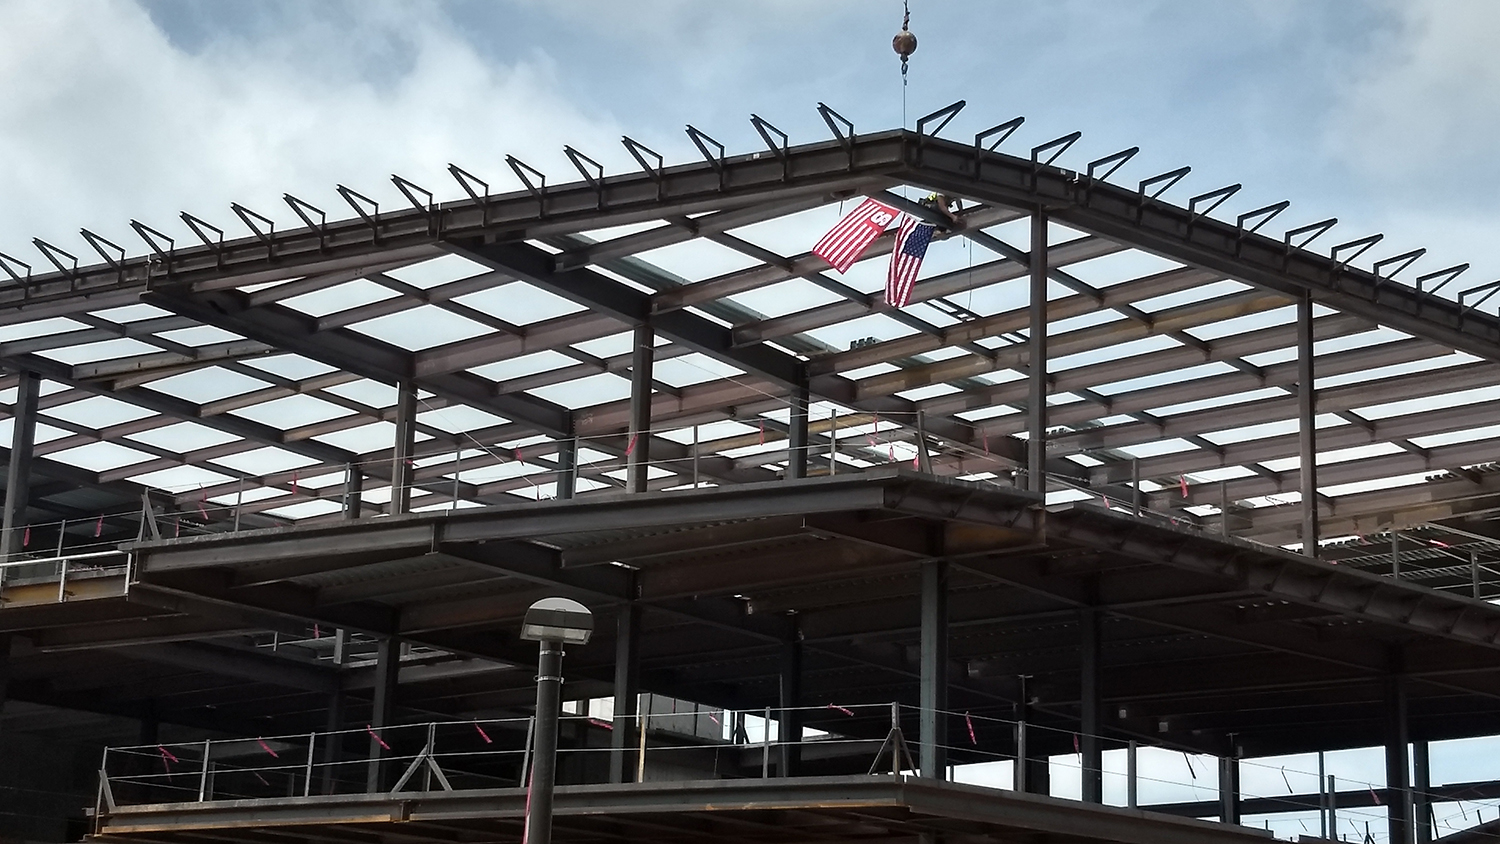 Workers attach a steel beam to the structure of the new Wellness and Recreation Center.